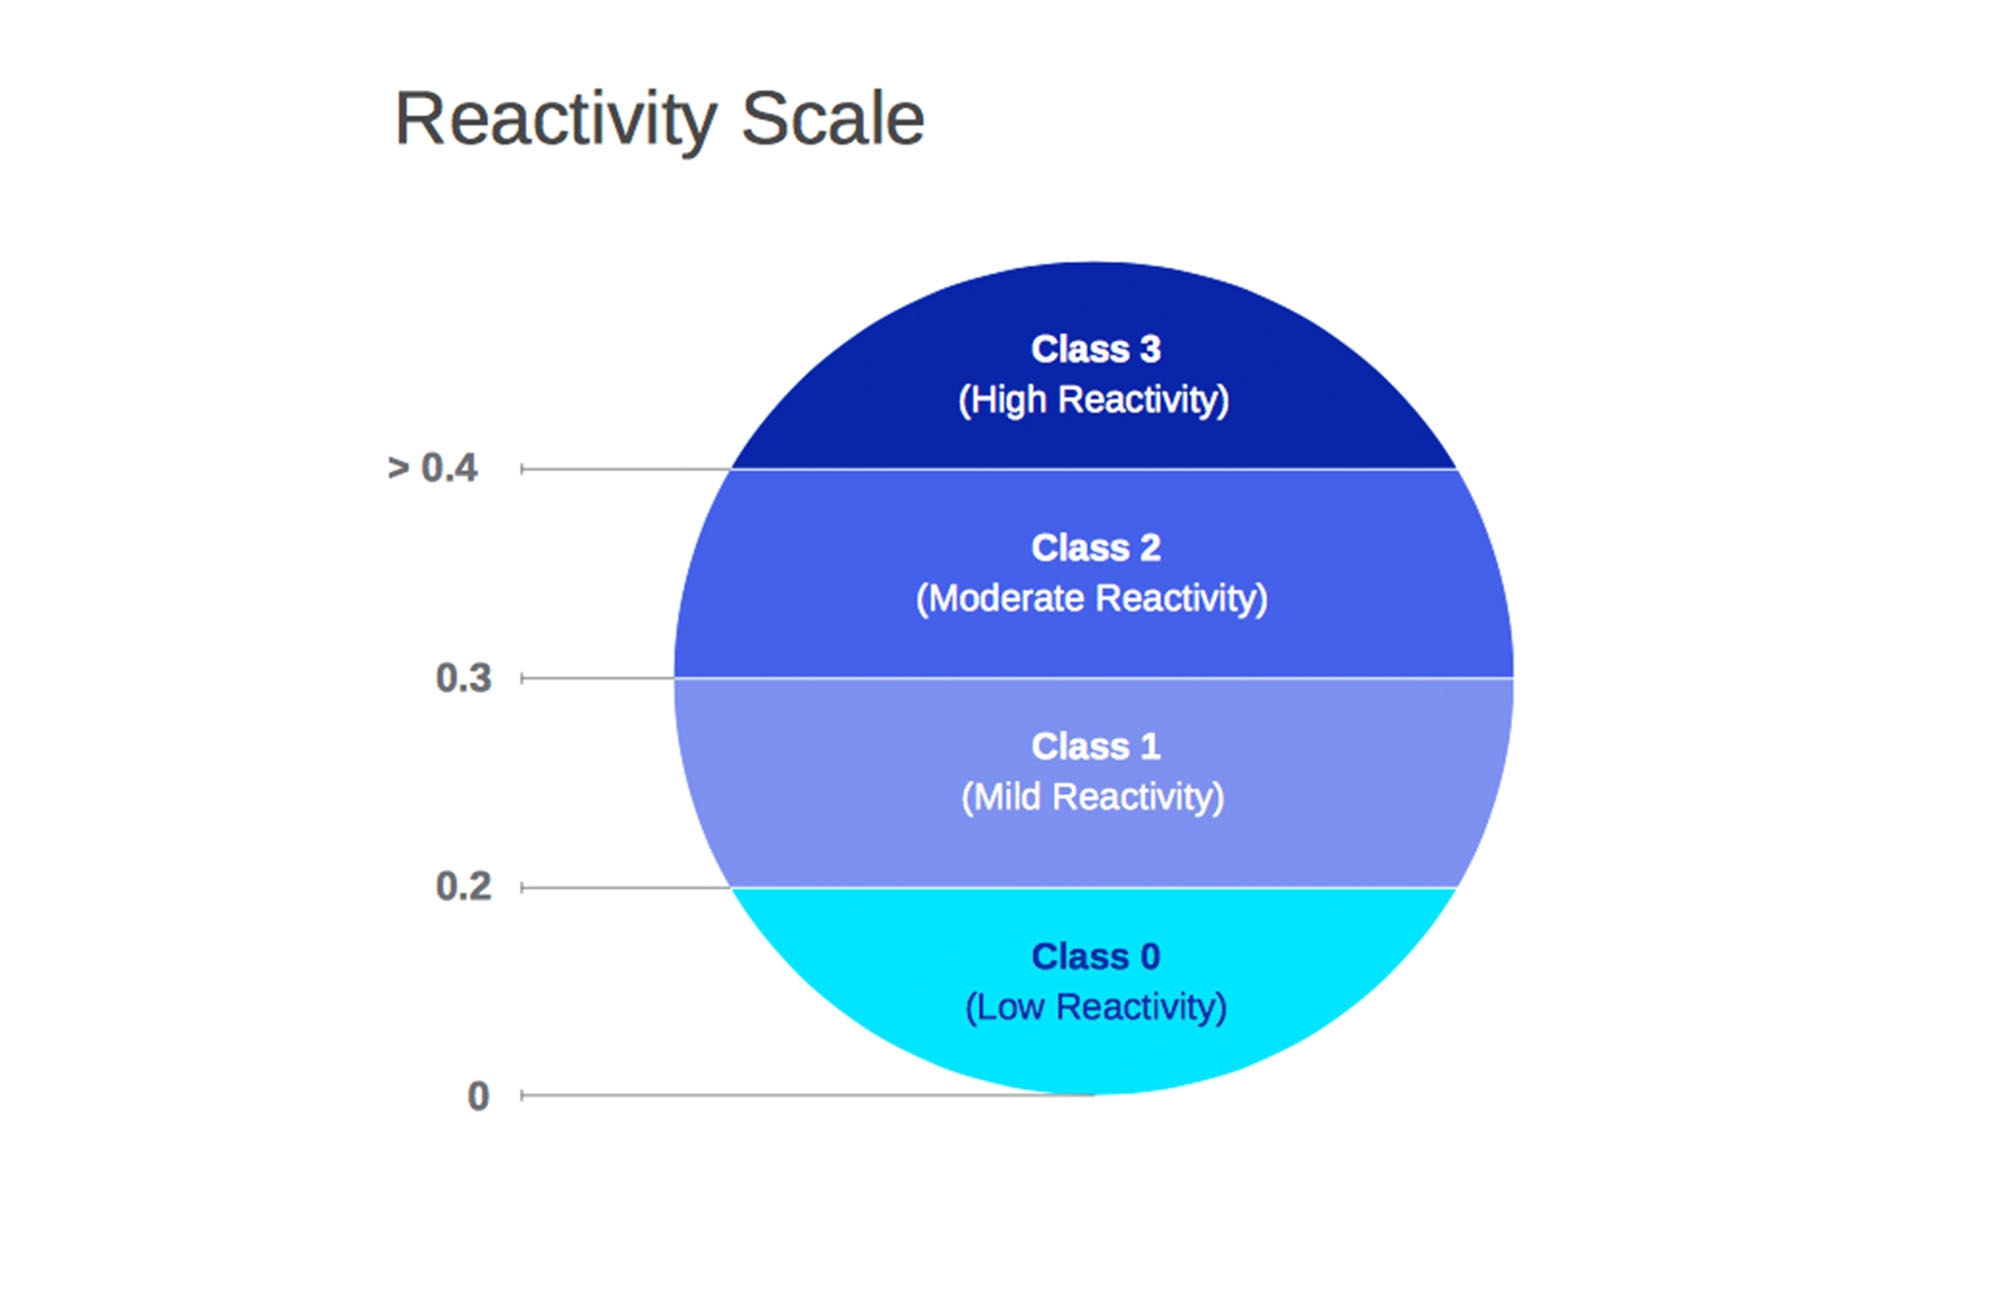 EverlyWell's Reactivity Scale